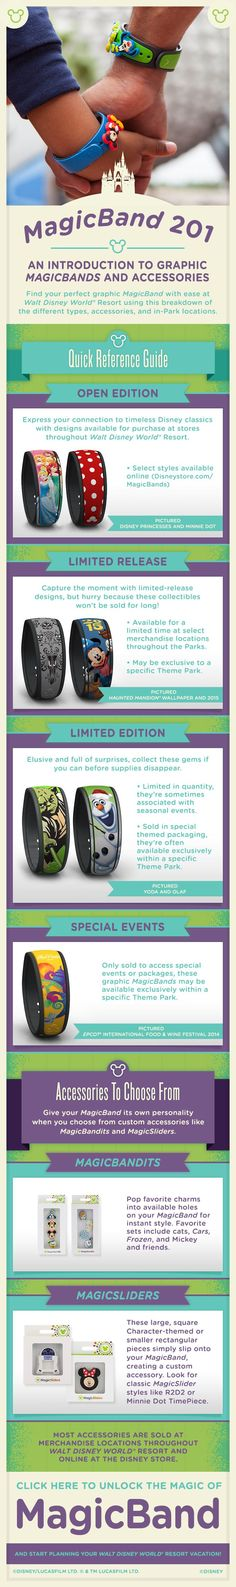 Find the perfect graphic MagicBand for your Walt Disney World vacation and customize your MagicBand with its own personality with accessories like MagicBandits and MagicSliders. Most accessories are sold at merchandise locations throughout Walt Disney World Resort and online at the Disney Store.